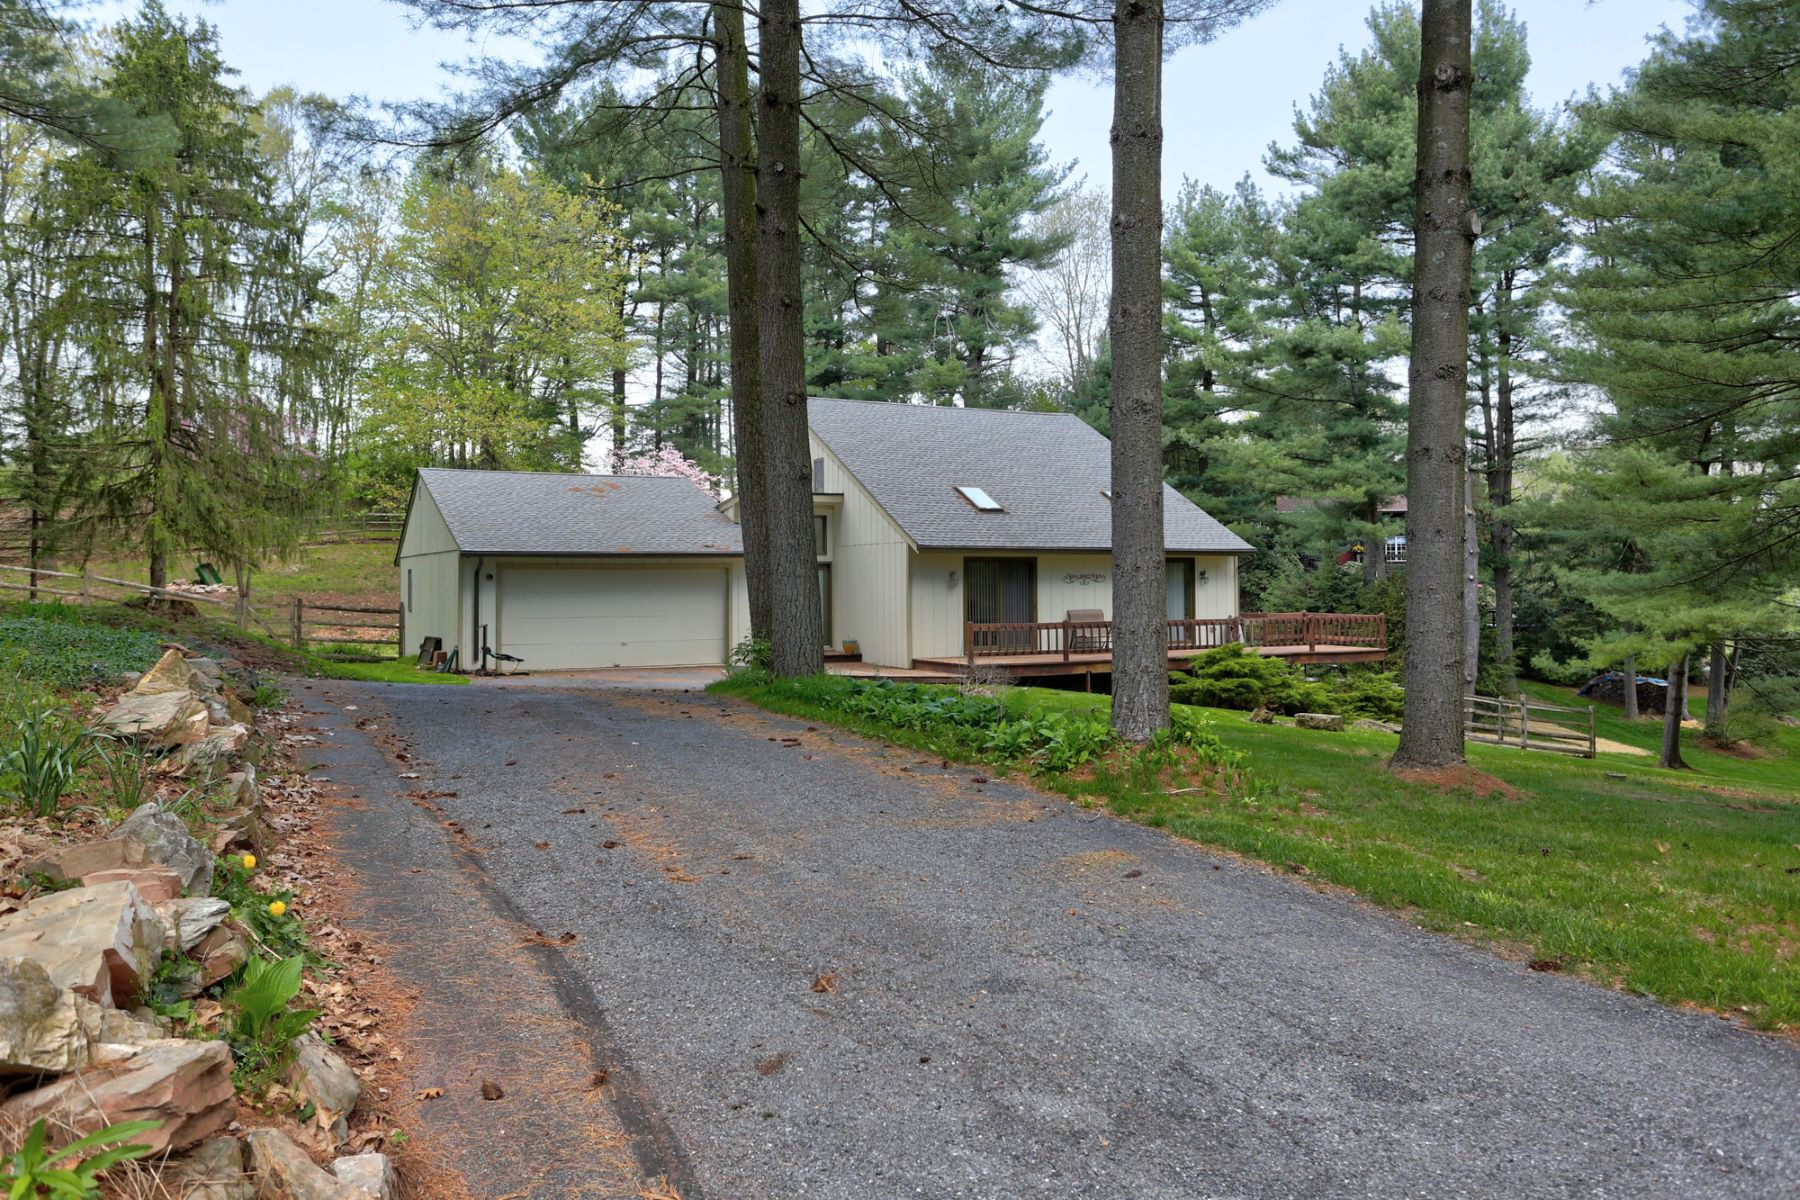 Additional photo for property listing at 3 Century Lane 3 Century Lane Newmanstown, Pennsylvania 17073 United States